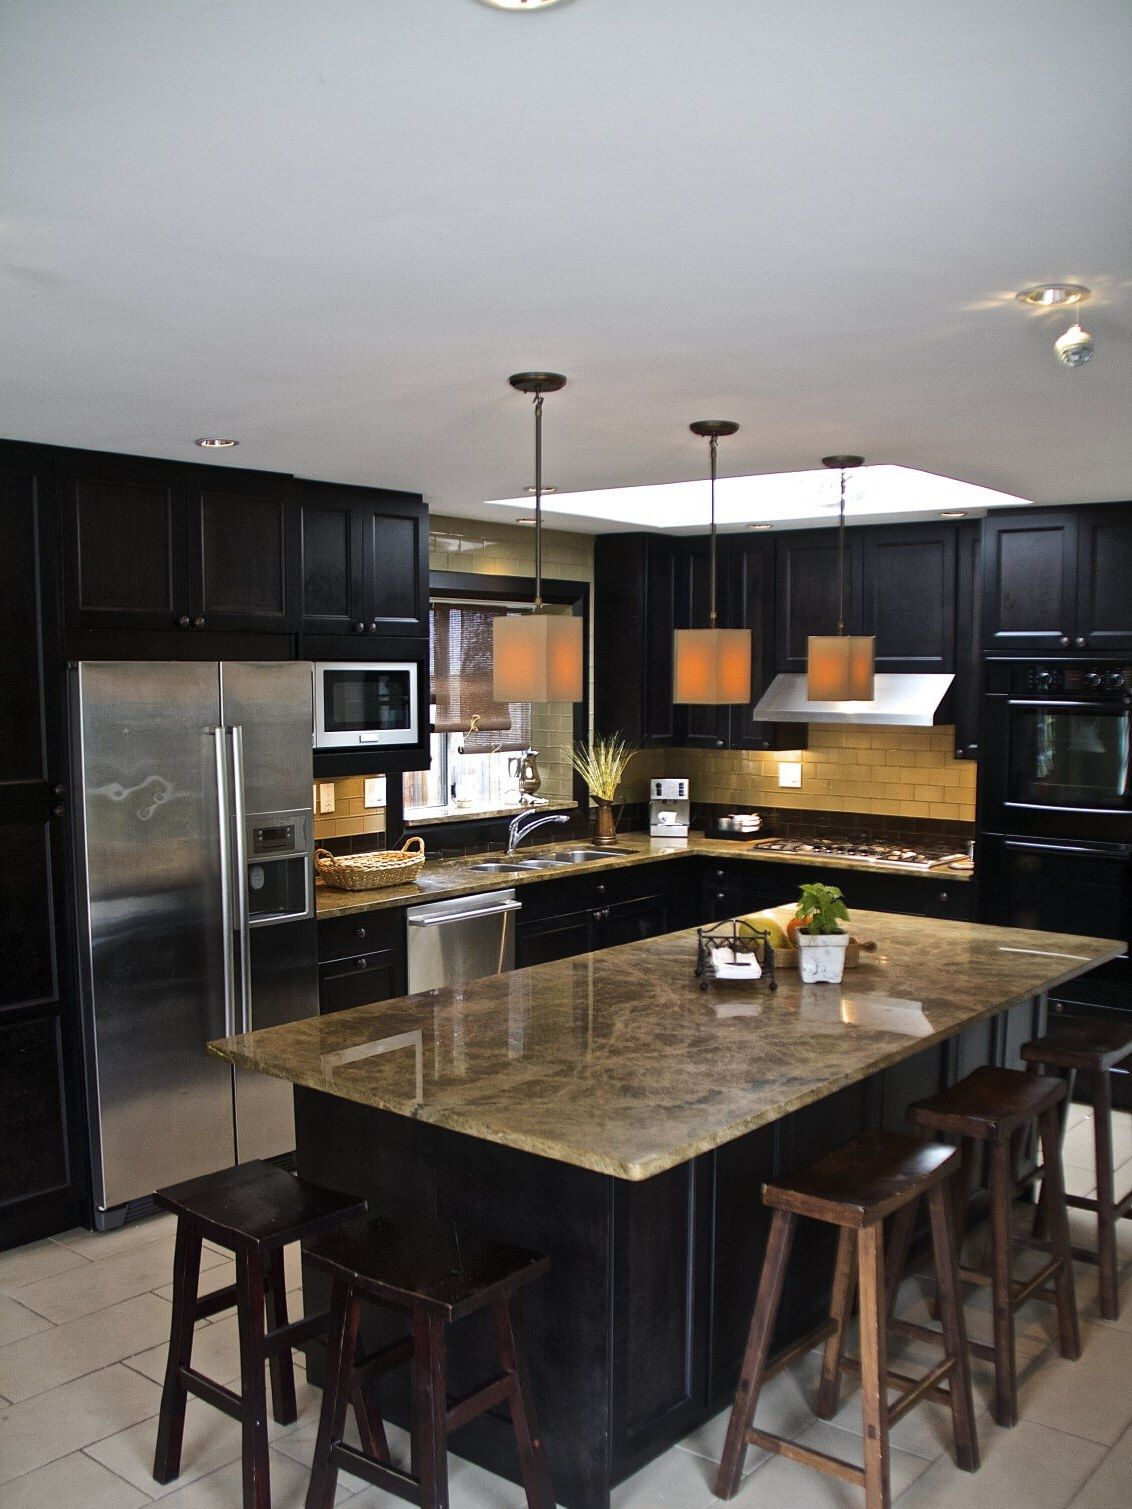 Inspiring before after kitchen remodel ideas and diy